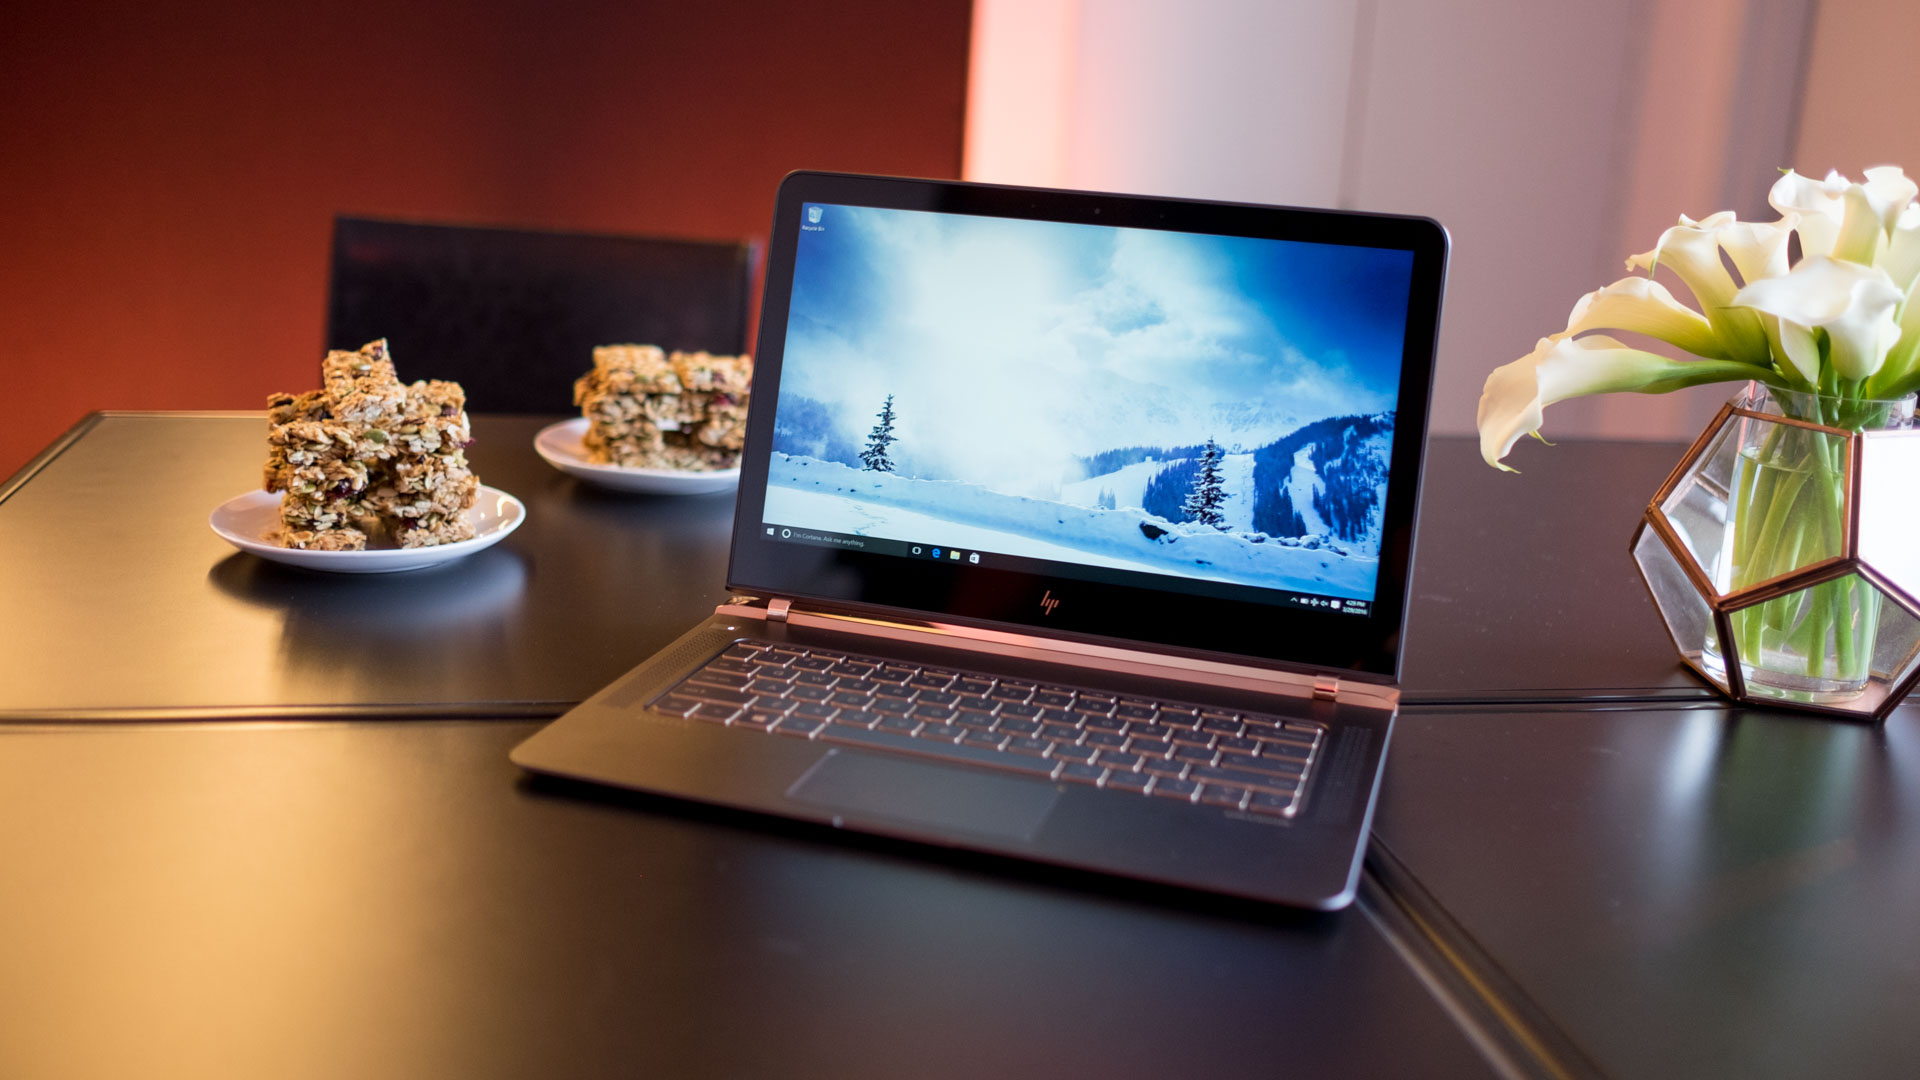 Hp Spectre Review Techradar Laptoptech Laptop Repair Specialist Spare Parts